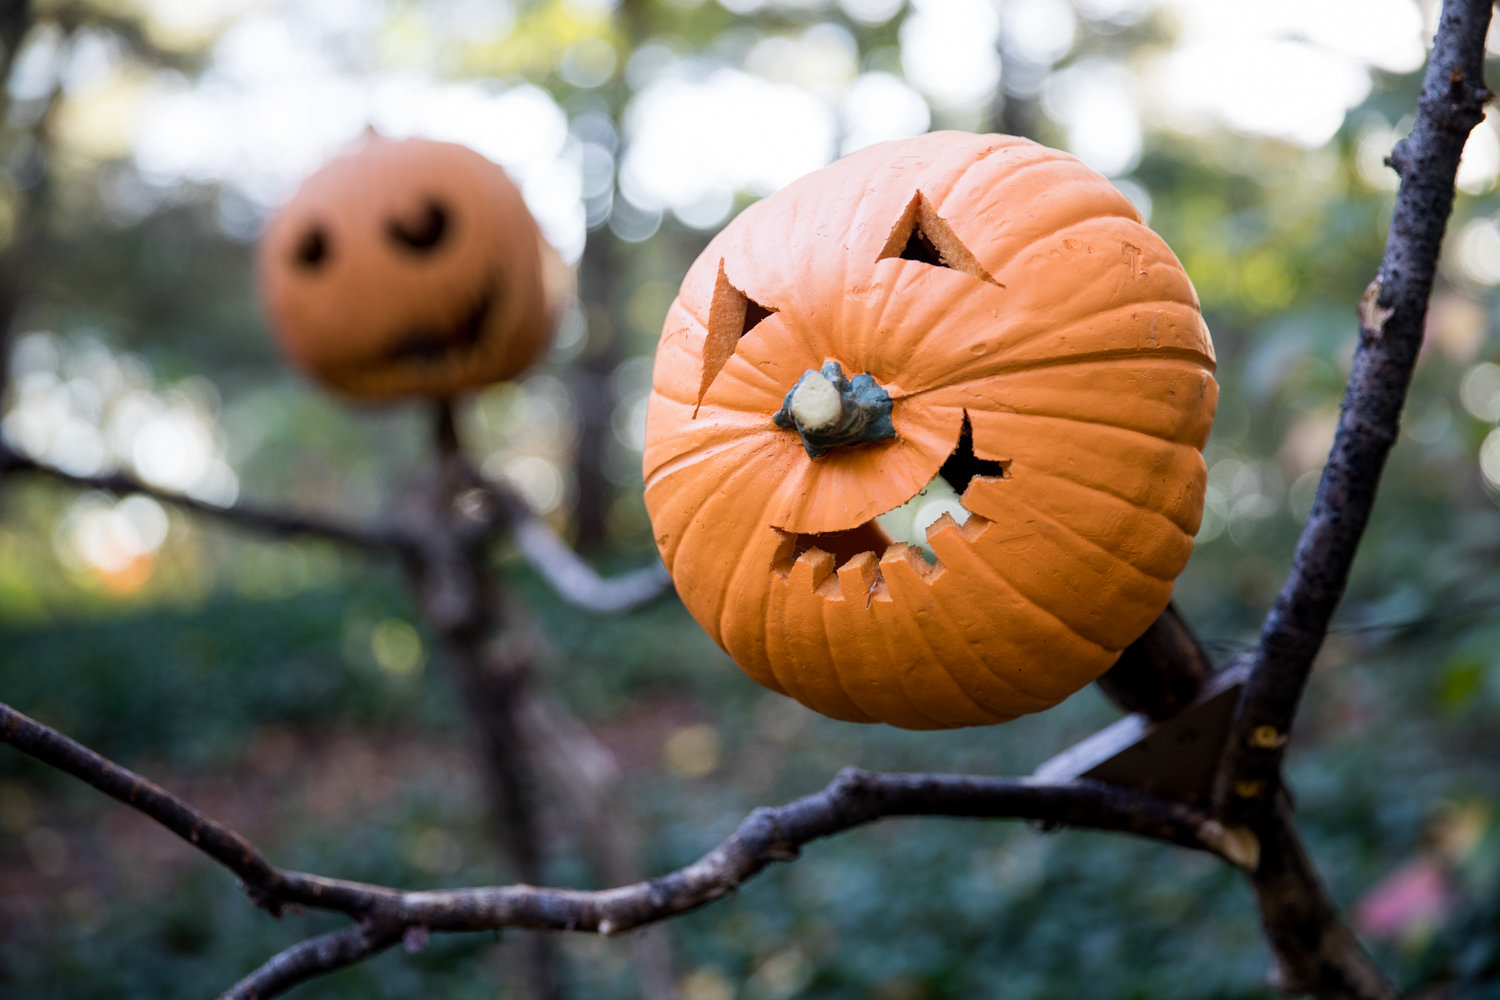 Pumpkin-headed scarecrows loom large in the Spooky Pumpkin Garden at the New York Botanical Garden.